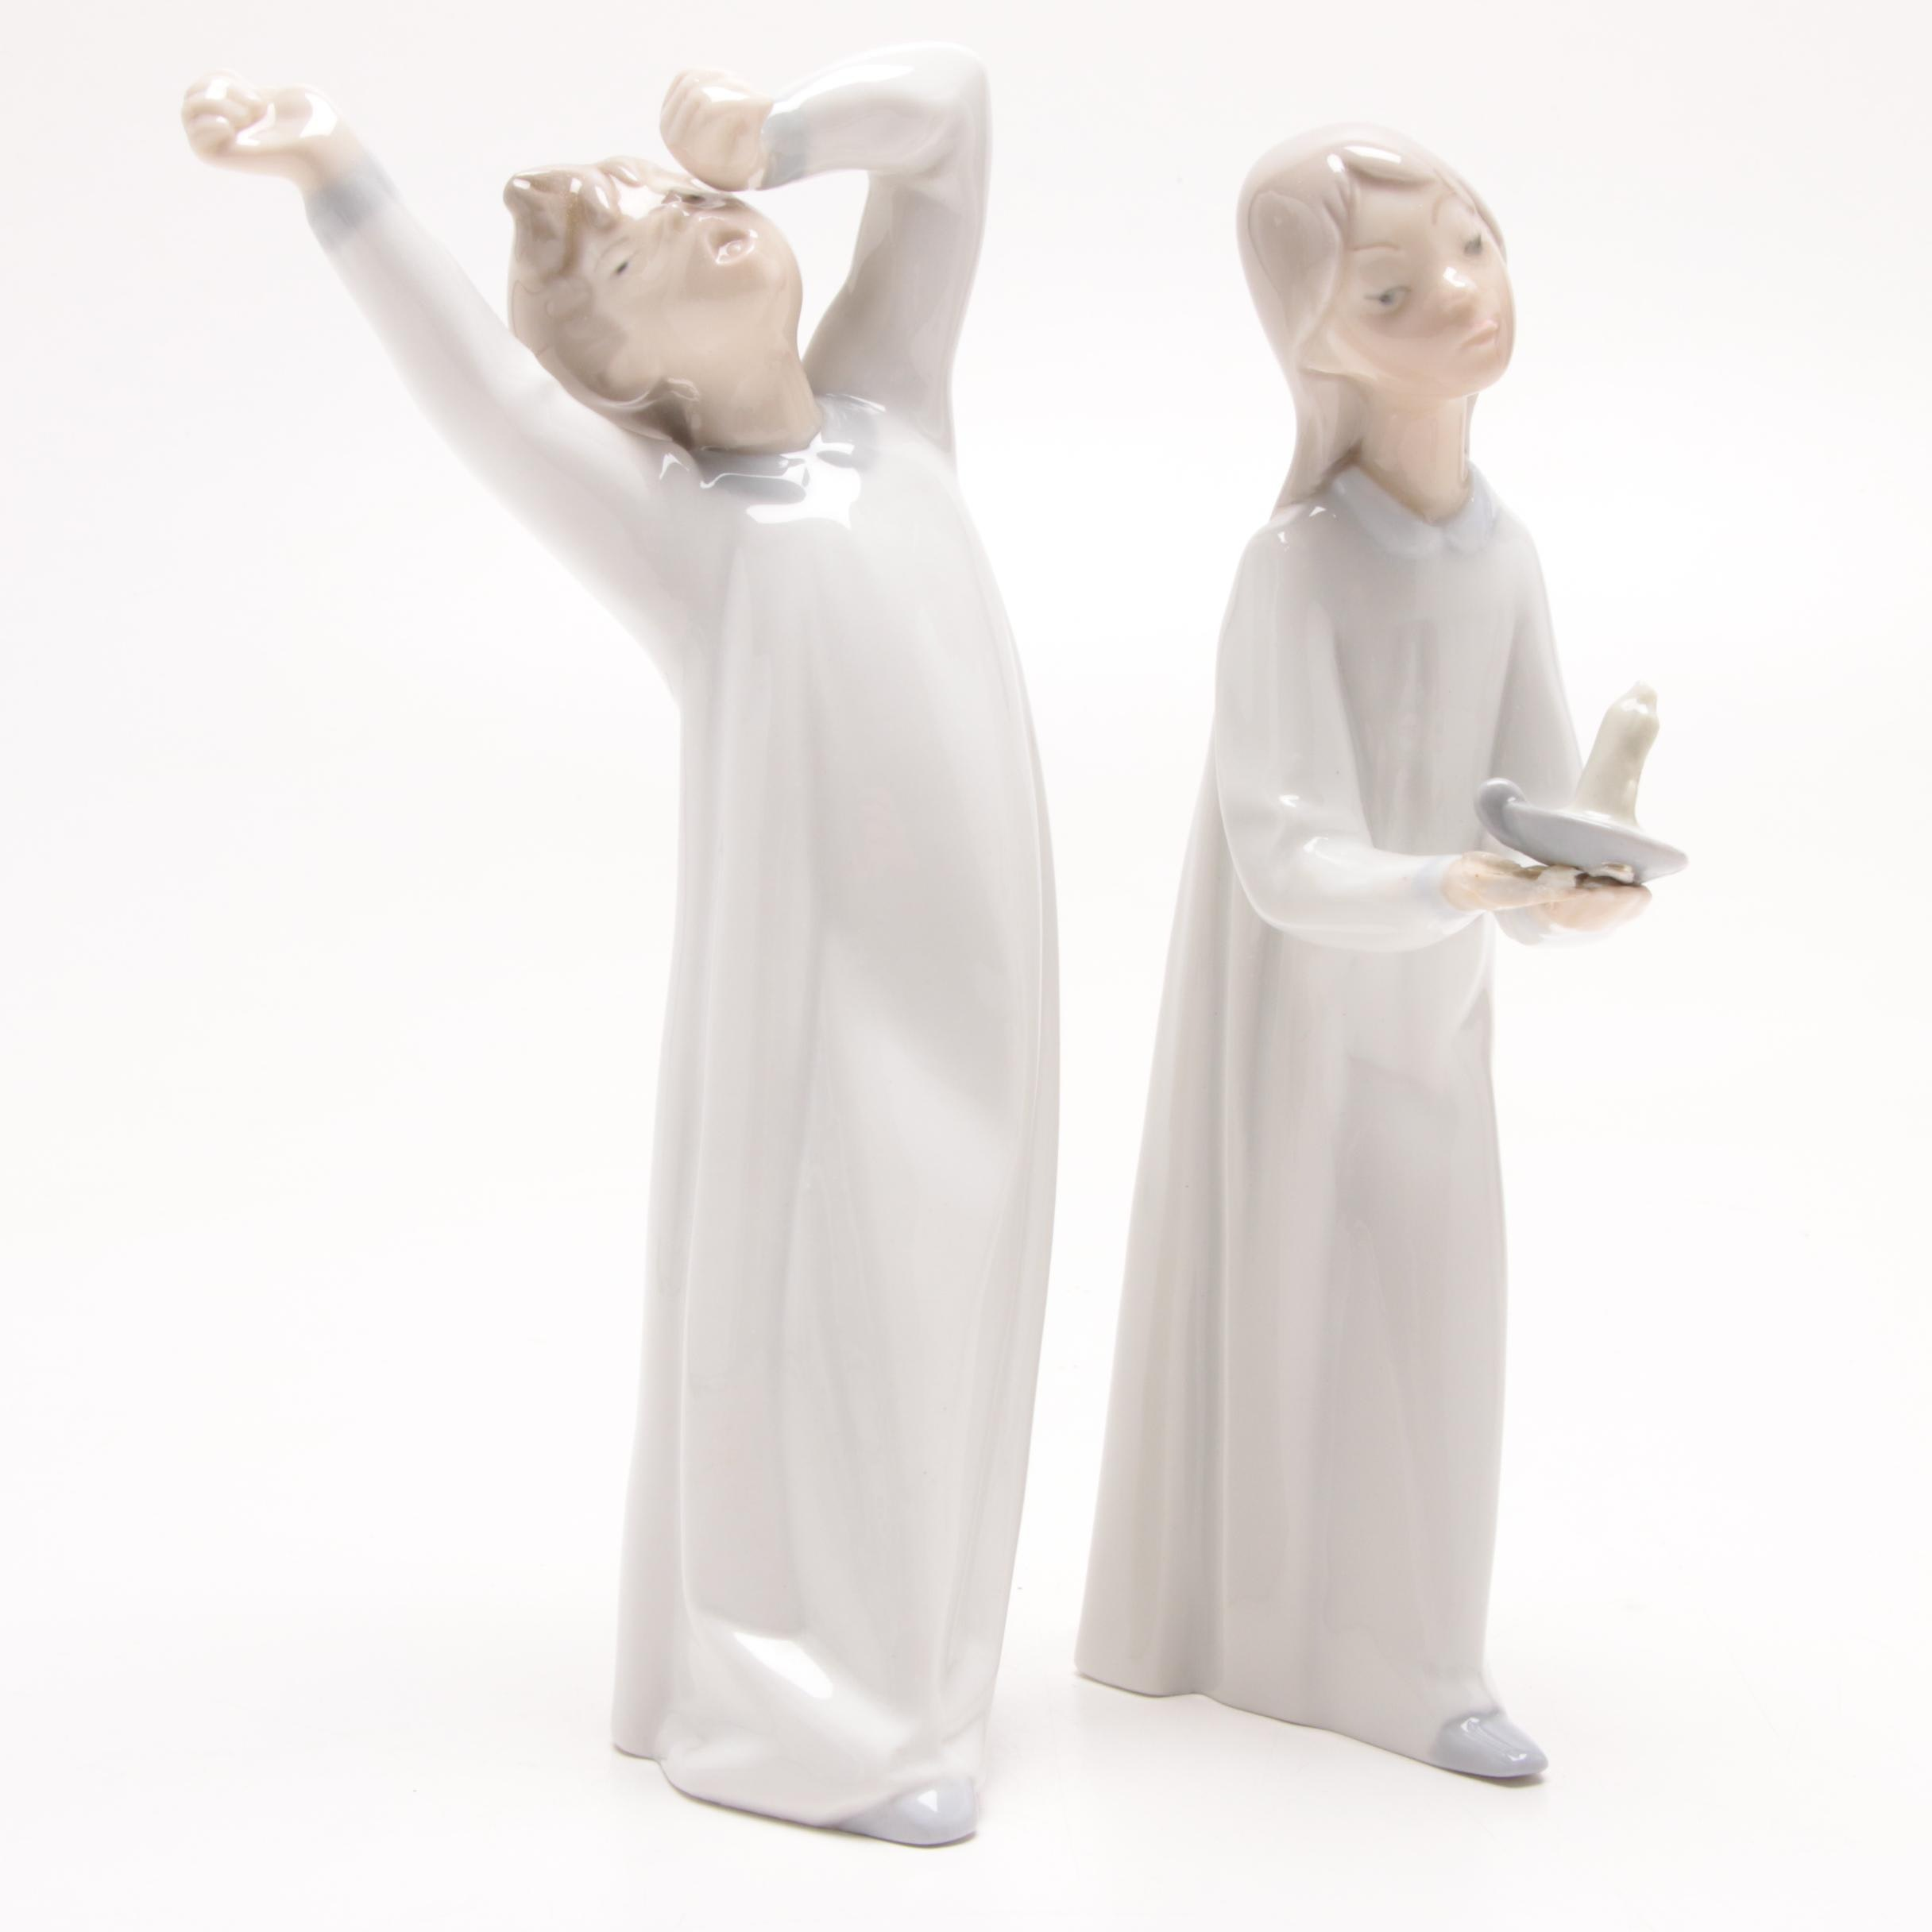 """Lladró """"Yawning Boy"""" and """"Girl with Candle"""" Porcelain Figurines"""